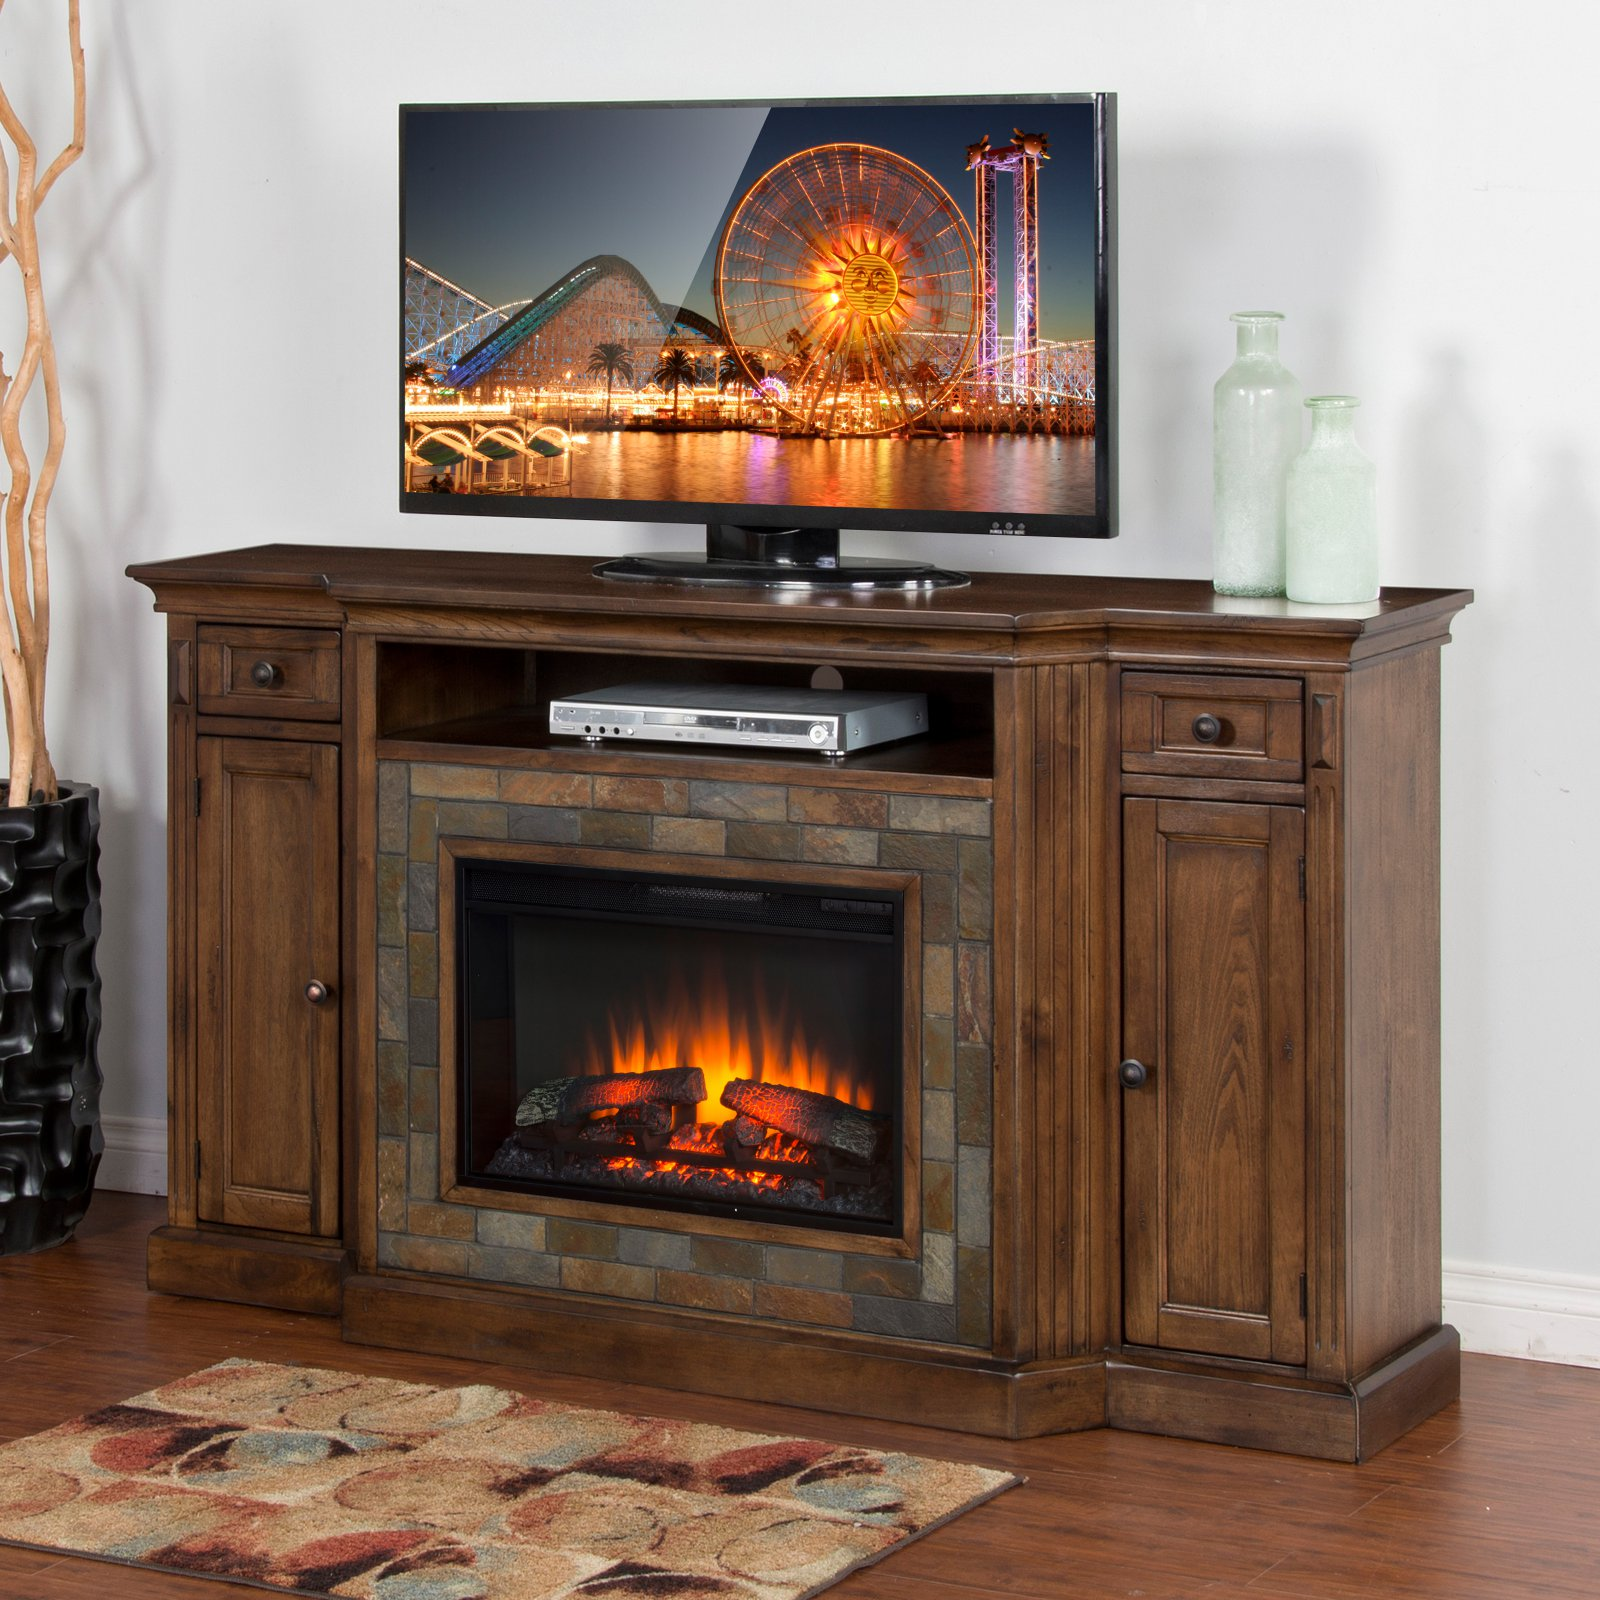 Sunny Designs Savannah 72 in. Electric Fireplace TV Console